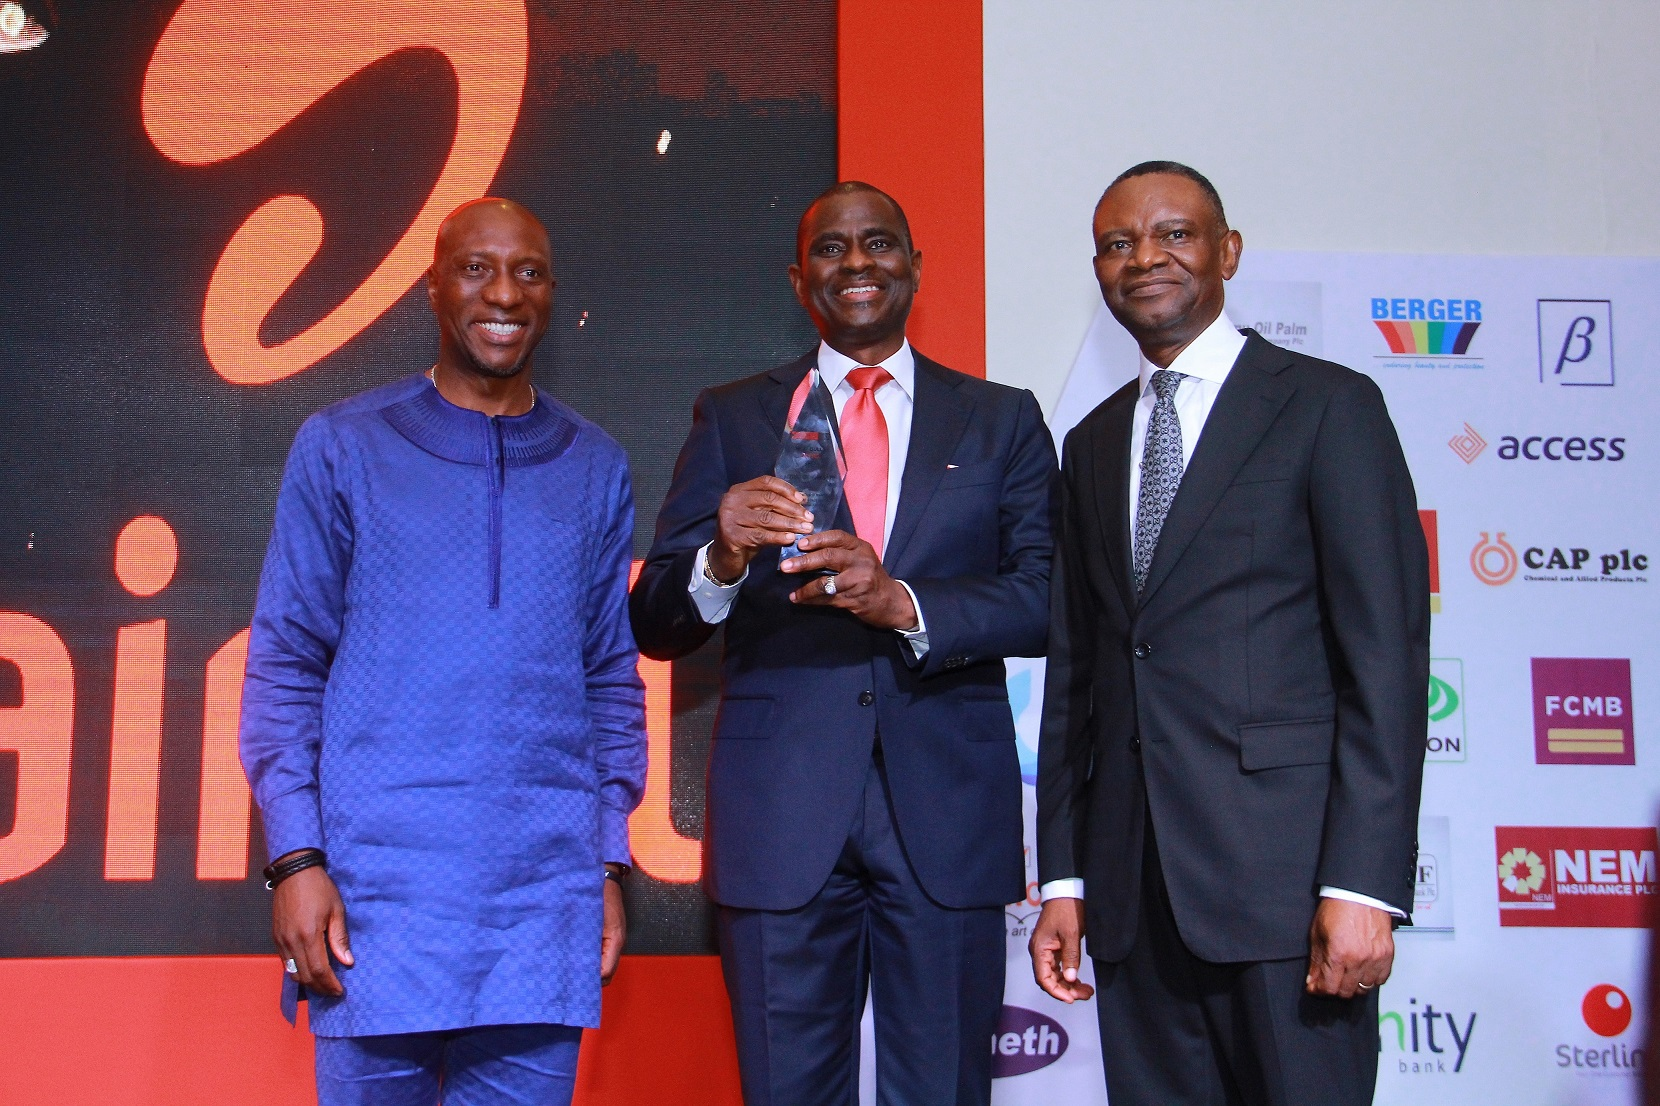 Airtel wins award for contributions to economy, job creation